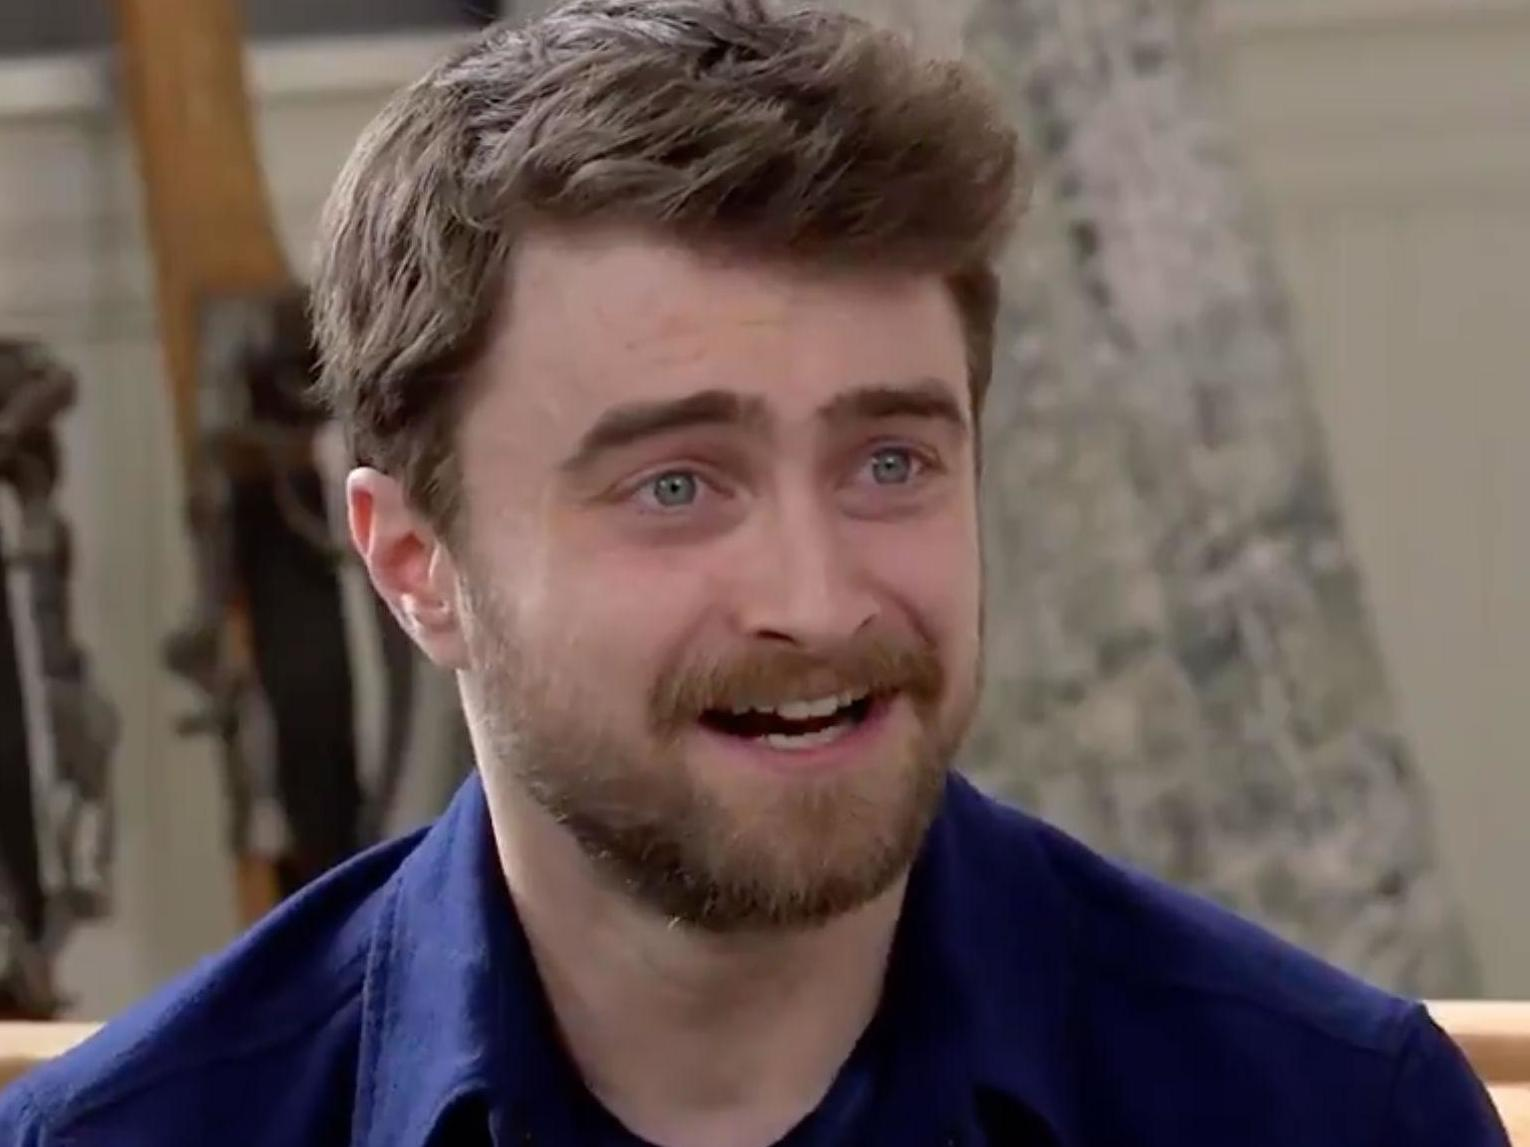 4fbabb2915608 Daniel Radcliffe takes a swipe at NFL star Tom Brady ahead of Super Bowl    Take that MAGA hat out of your locker